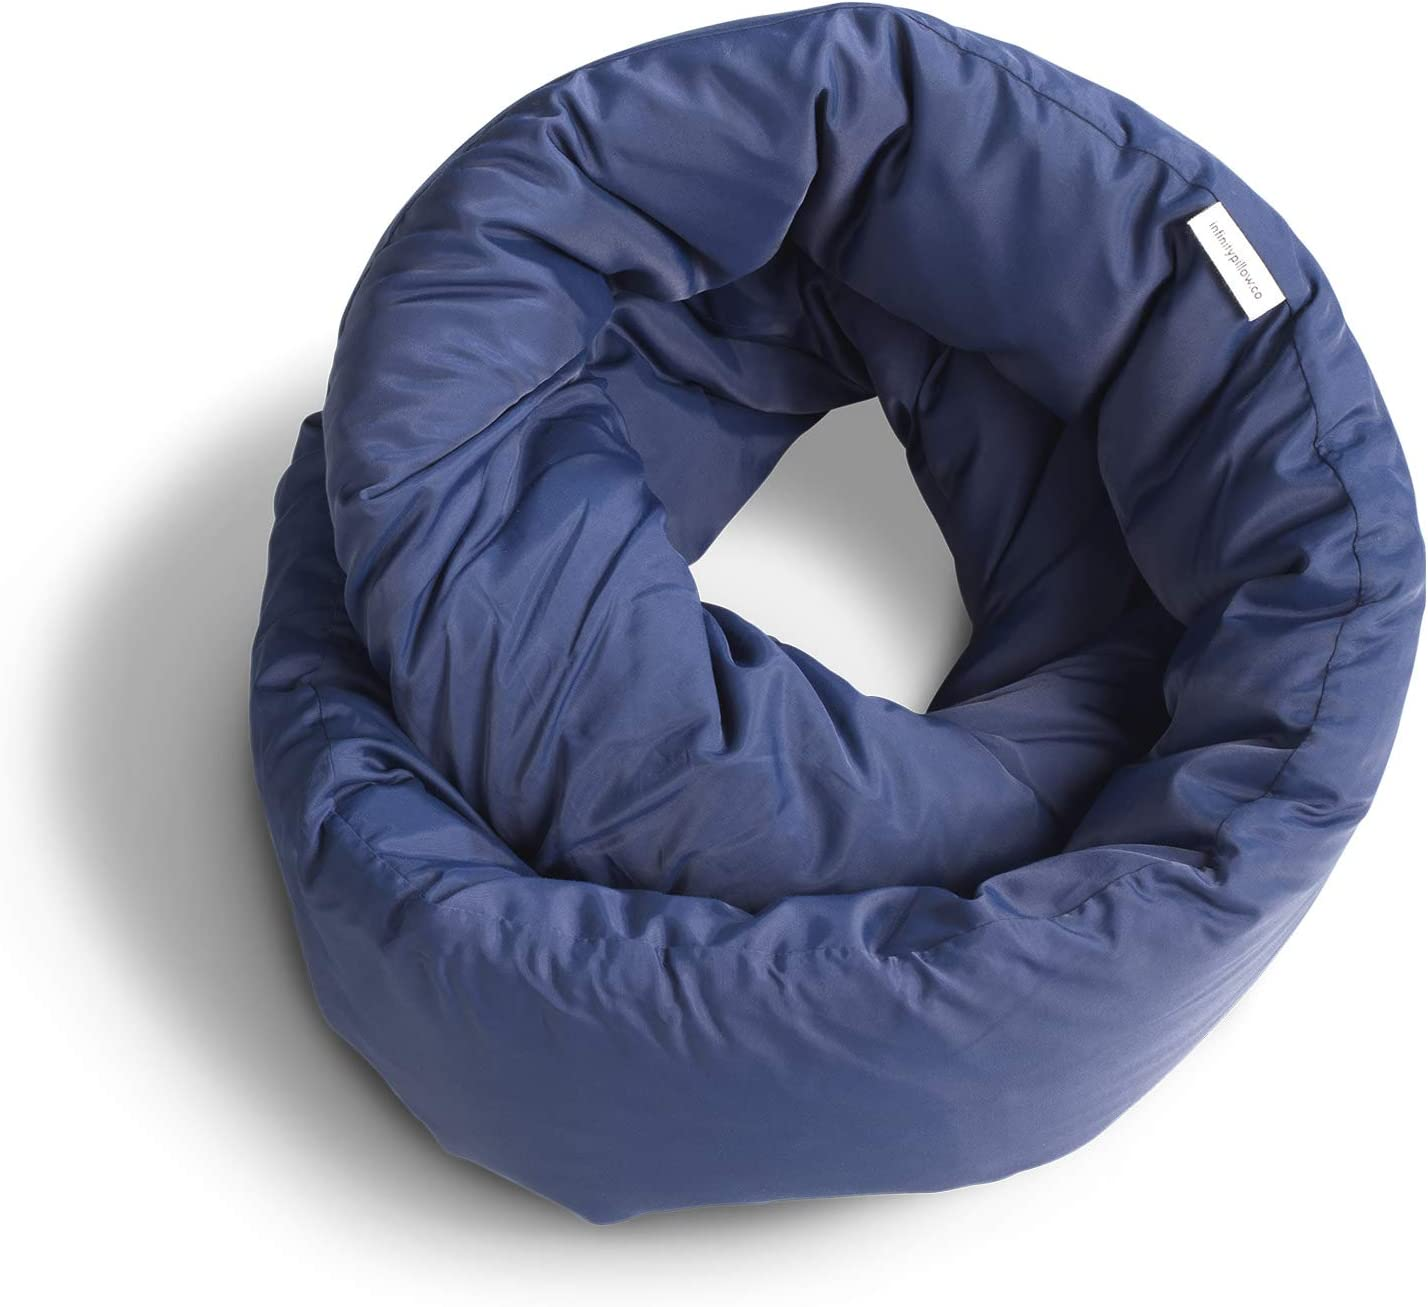 Huzi Infinity Pillow - Home Travel Soft Neck Scarf Support Sleep Nap (Navy)